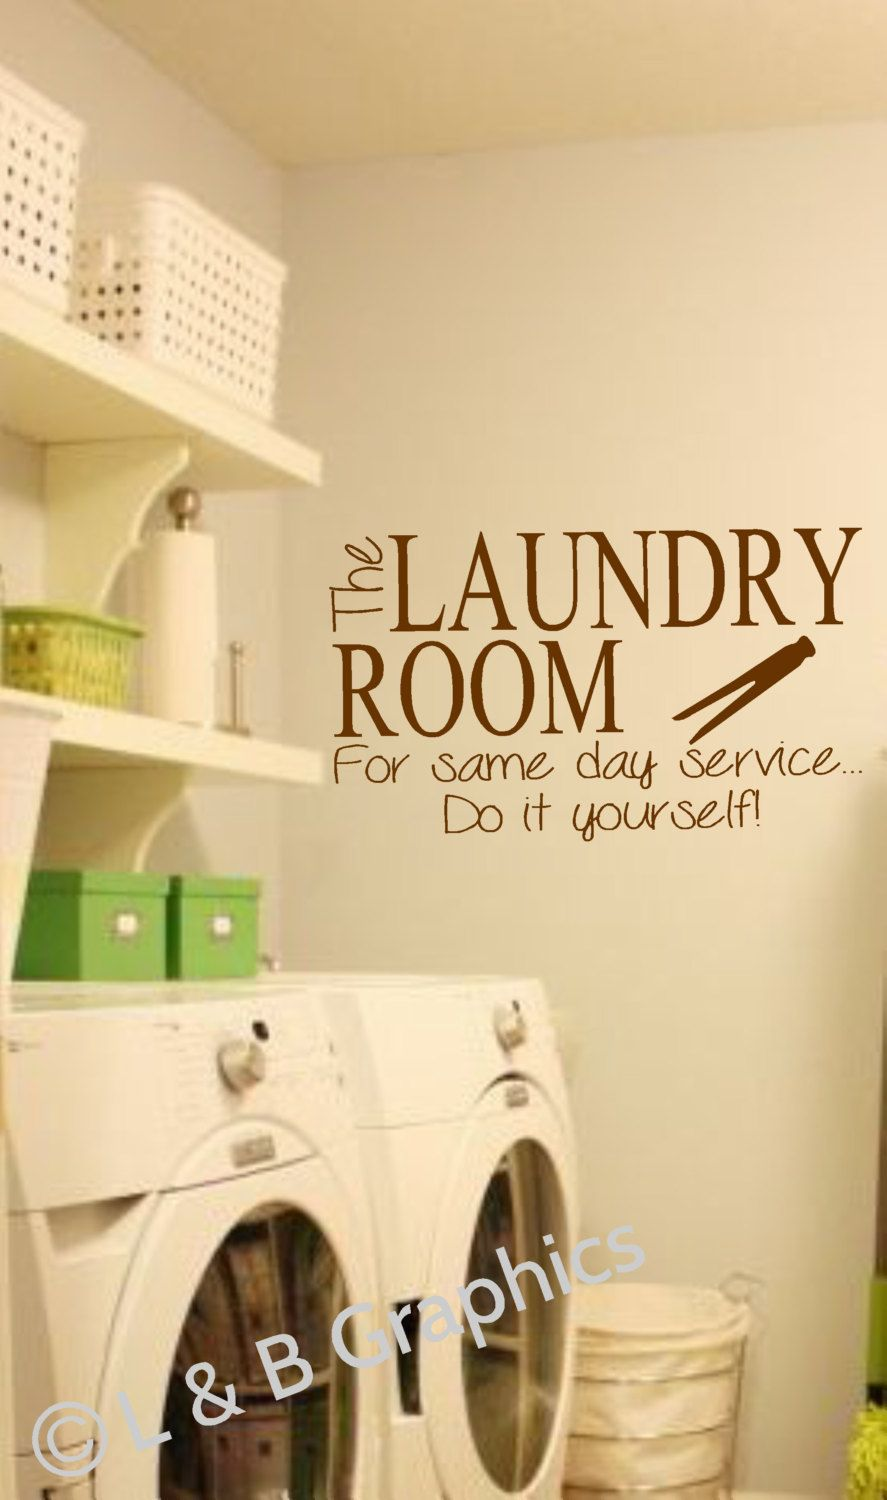 Laundry Room Vinyl Wall Decal- The Laundry Room For same day service ...